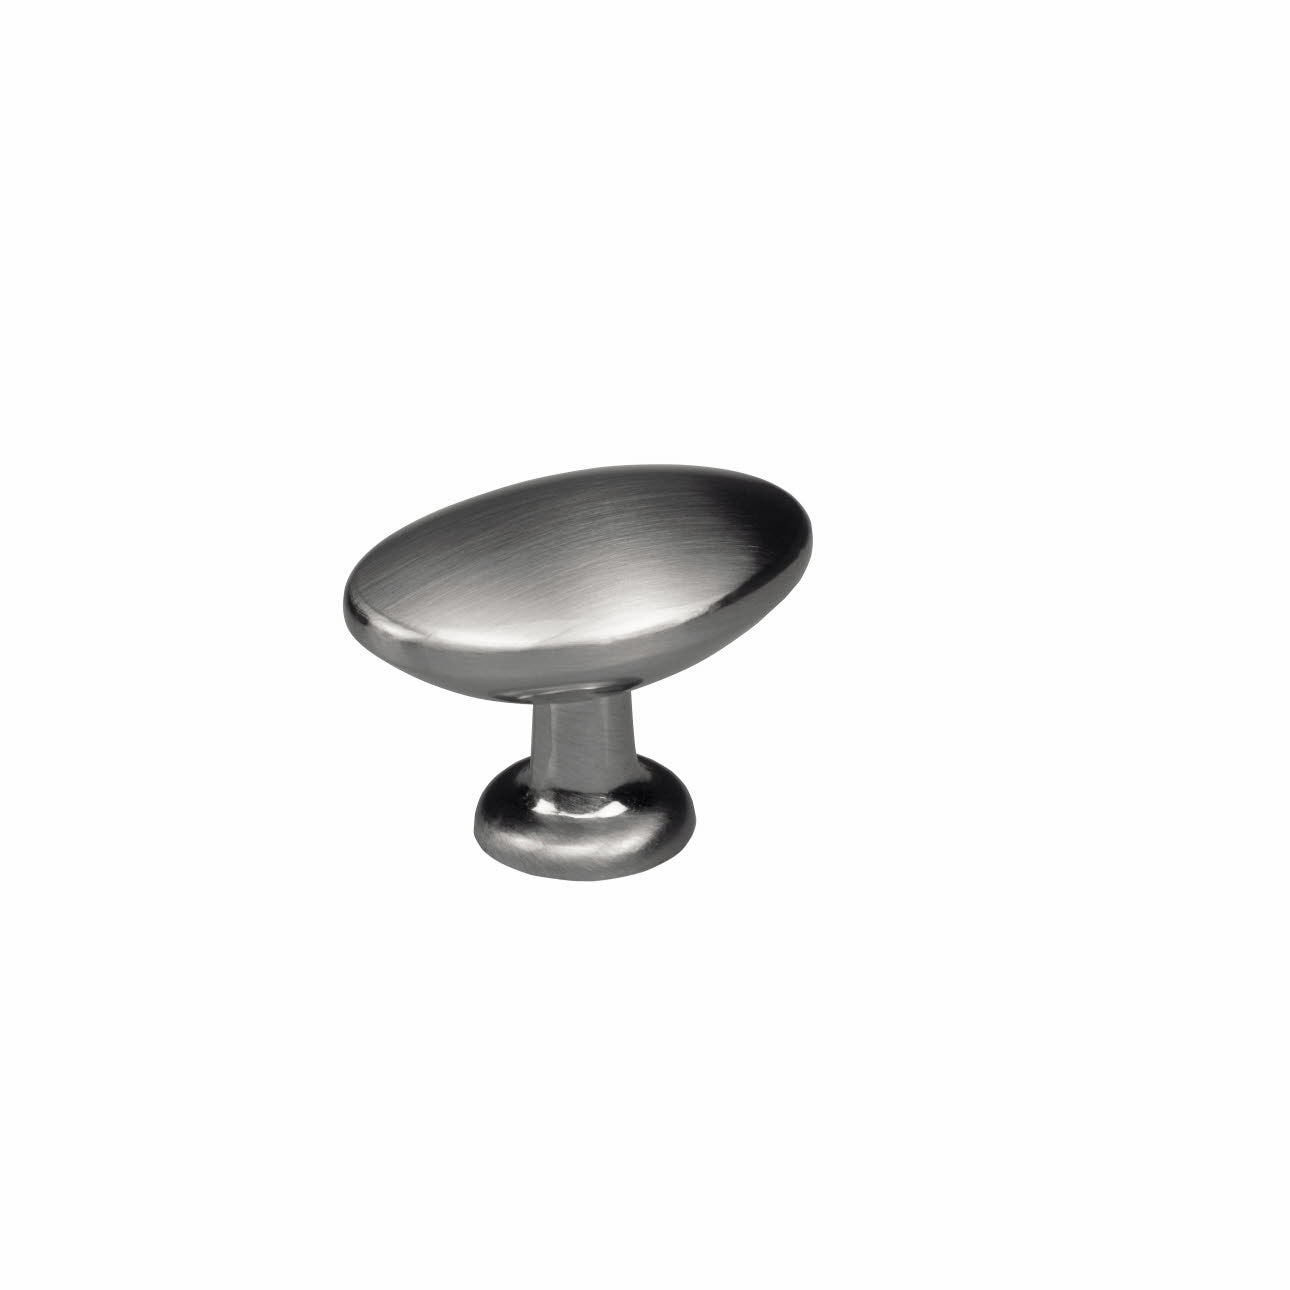 Metal knob Stainless steel coloured